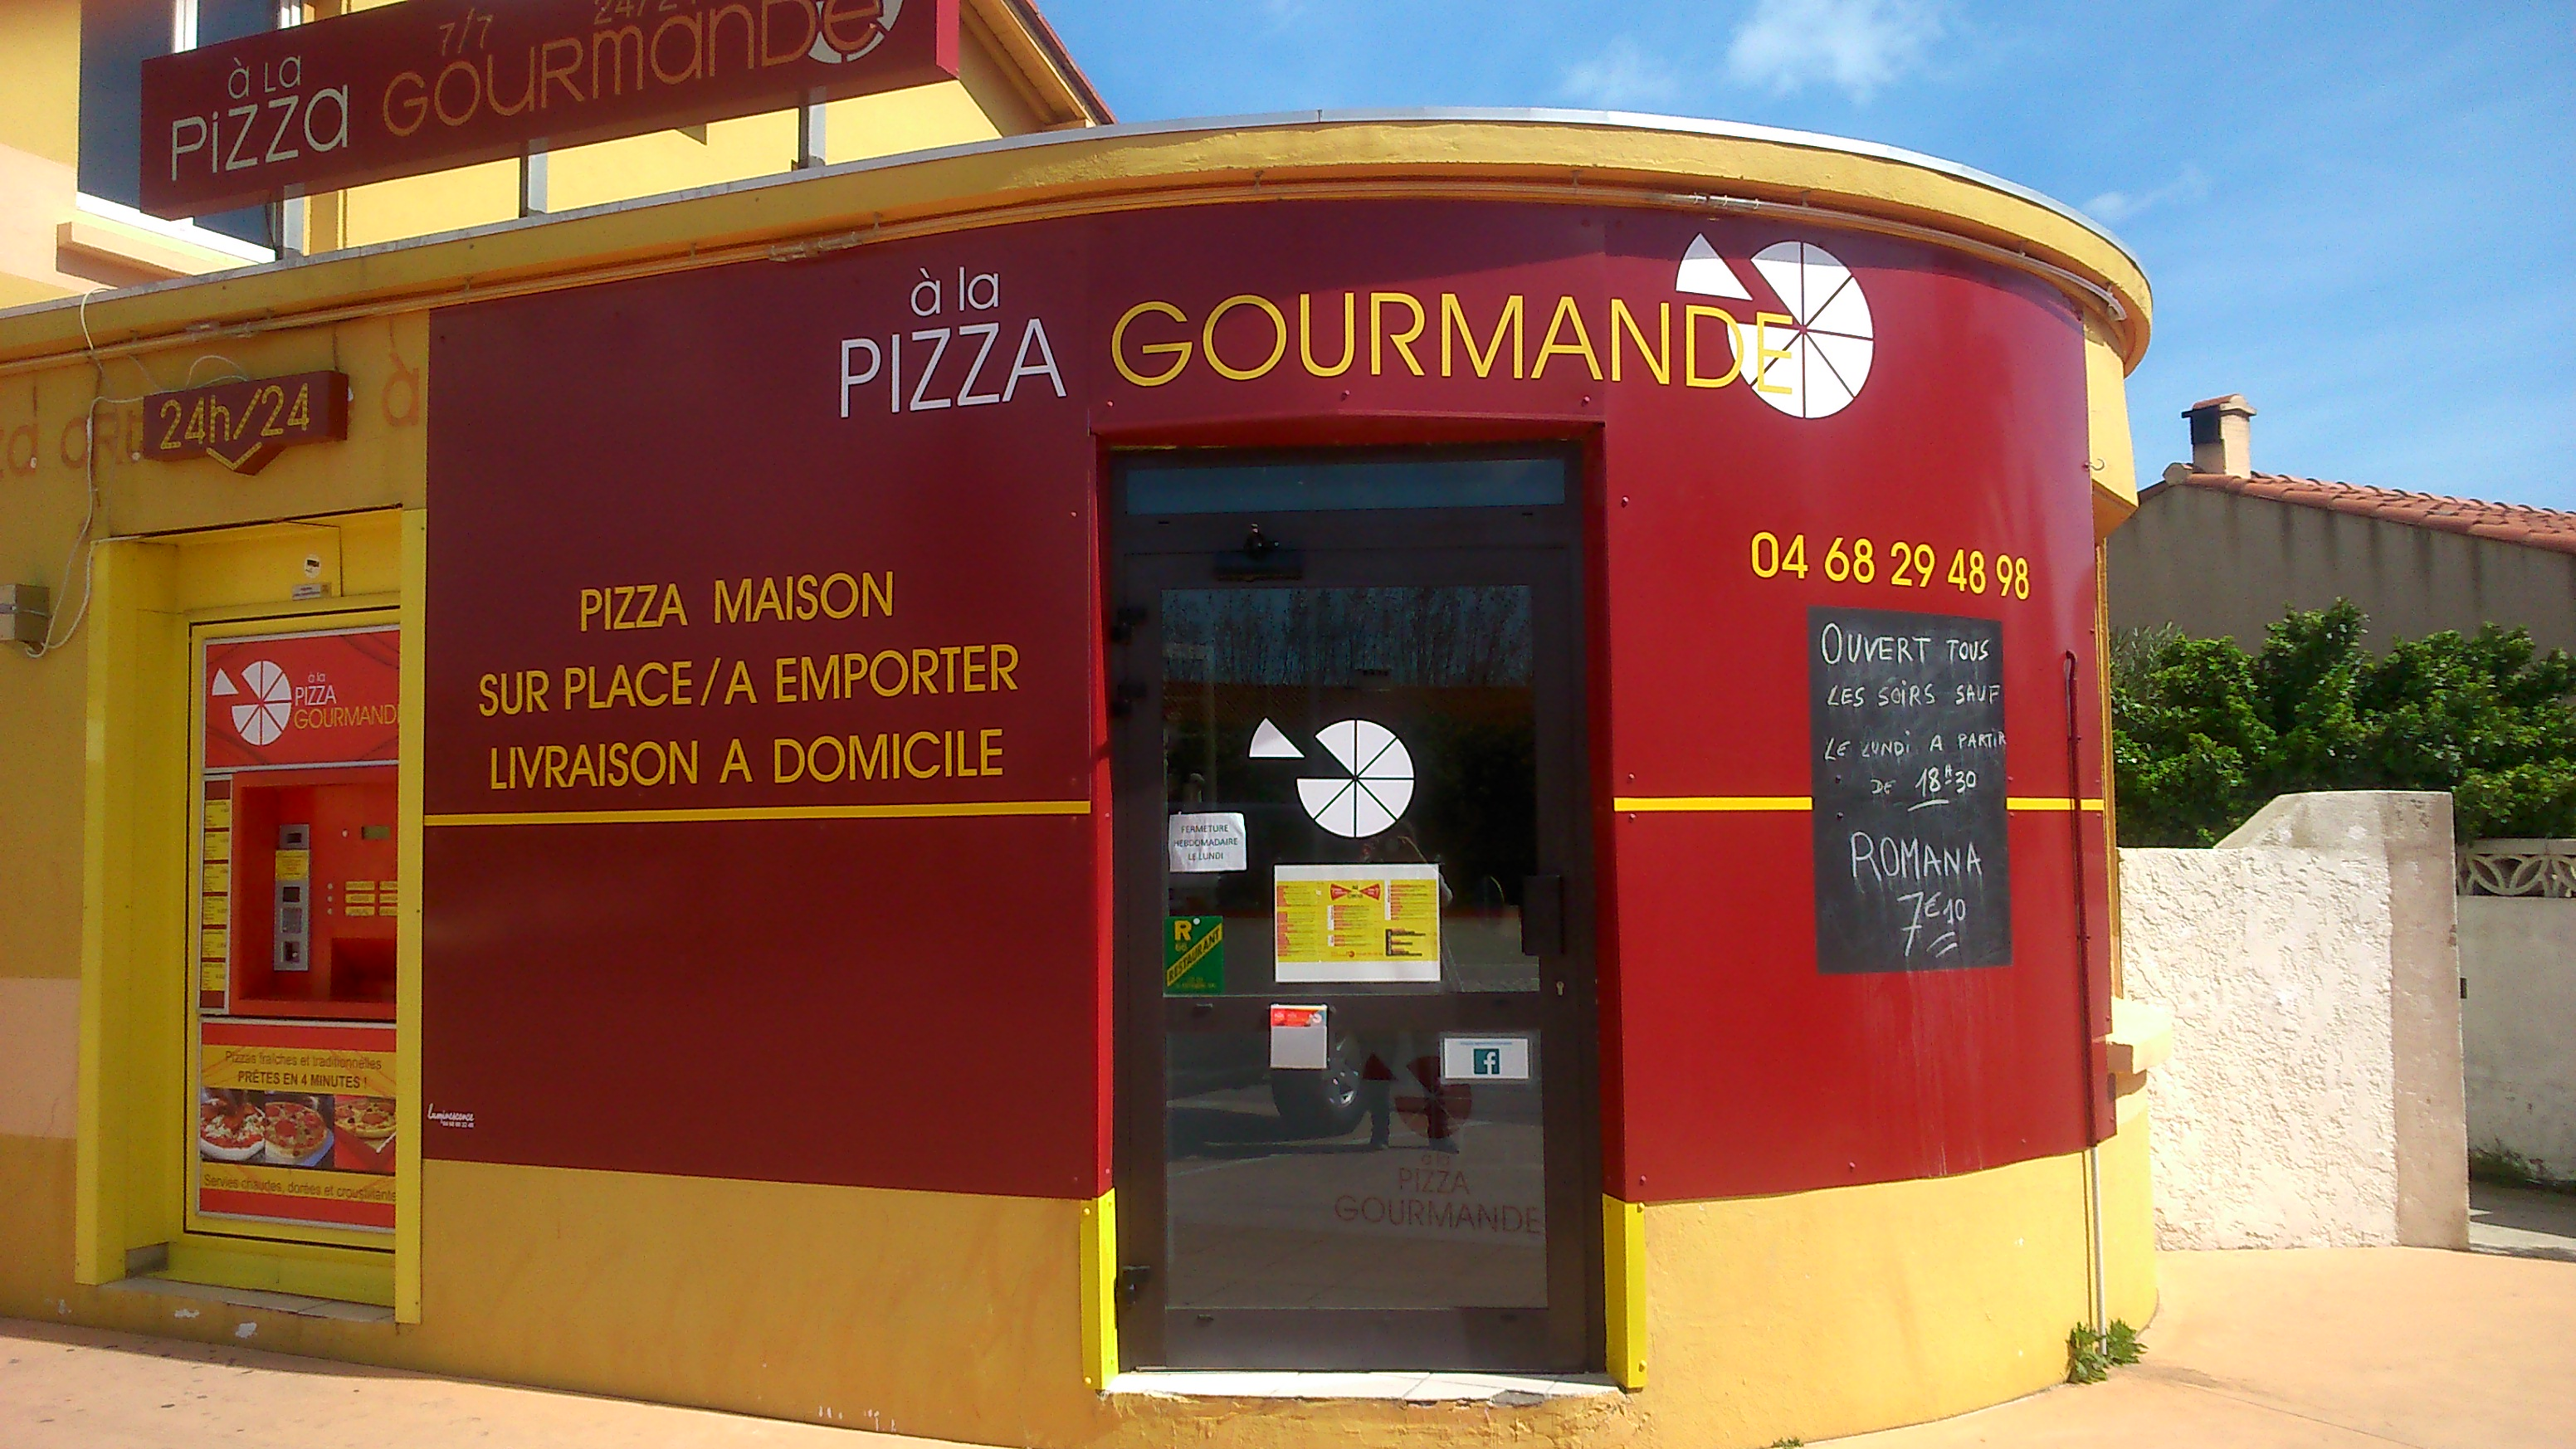 DistriPizza Pizza Gourmande